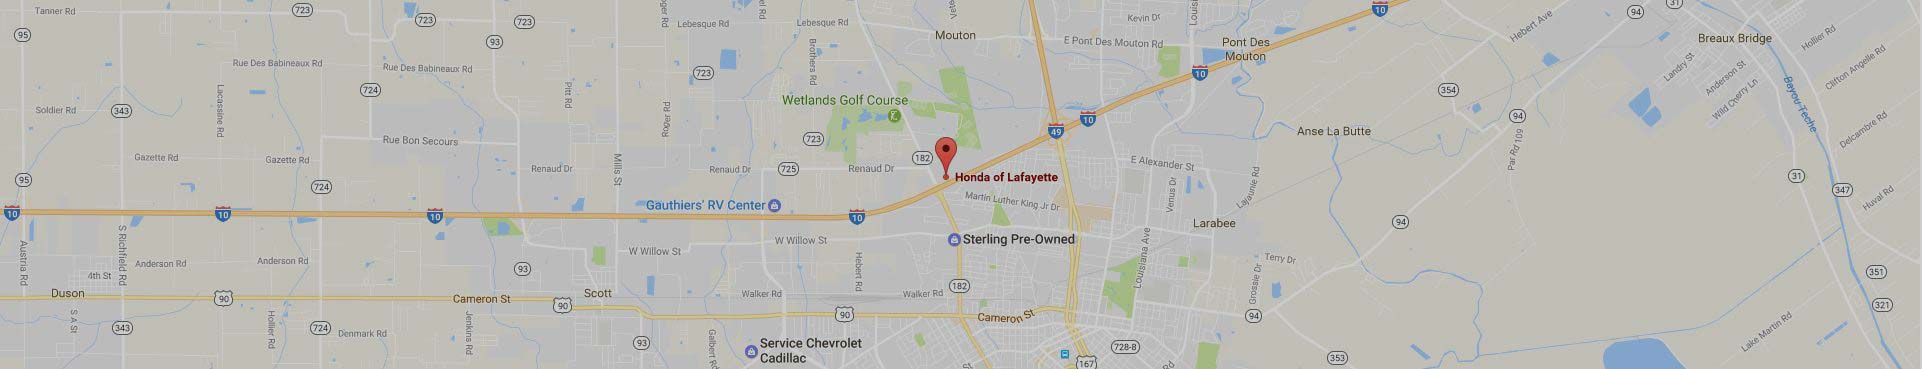 Honda of Lafayette Location